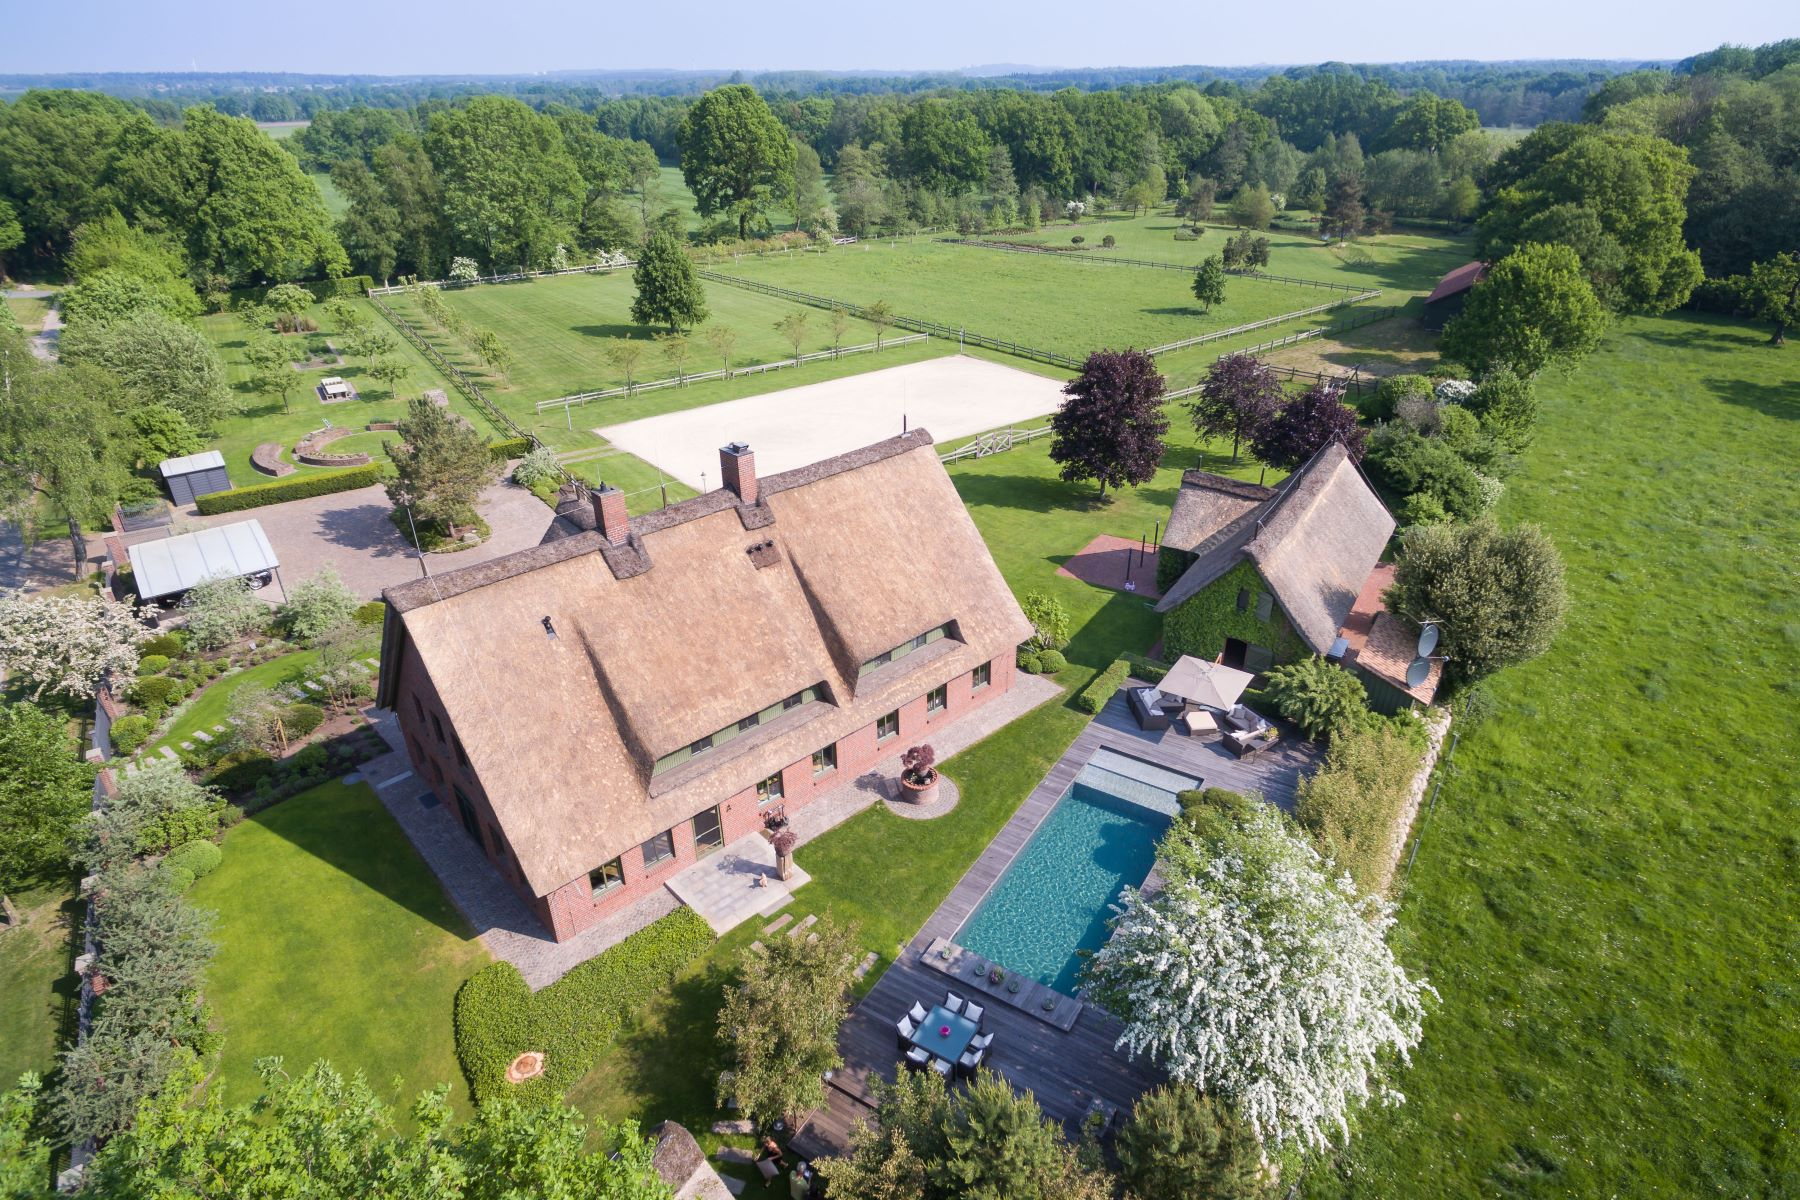 Single Family Home for Sale at Luxurious equestrian hideaway Other Lower Saxony, Lower Saxony 21717 Germany